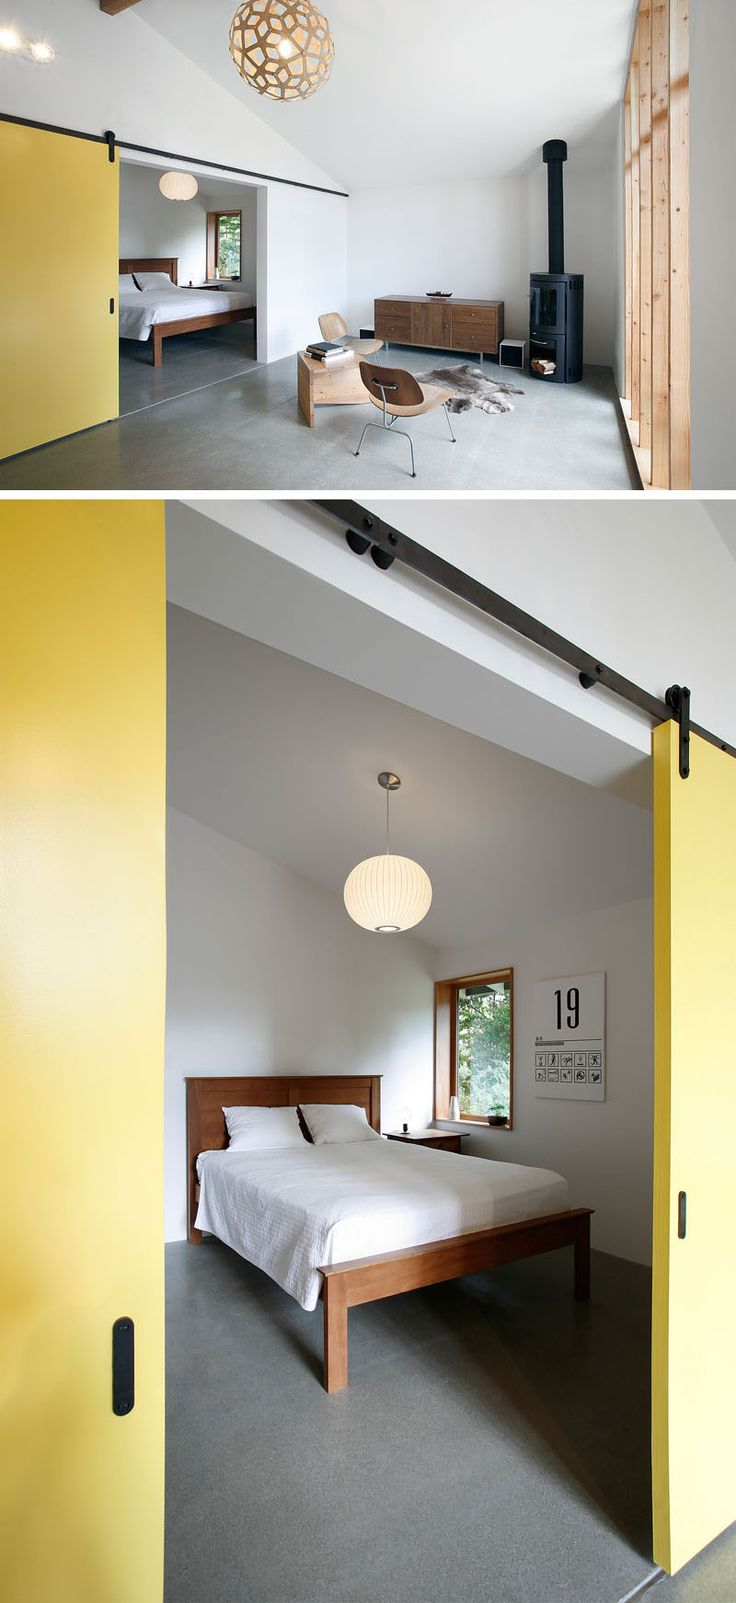 Large yellow sliding barn doors close off this minimalist bedroom from the main space.